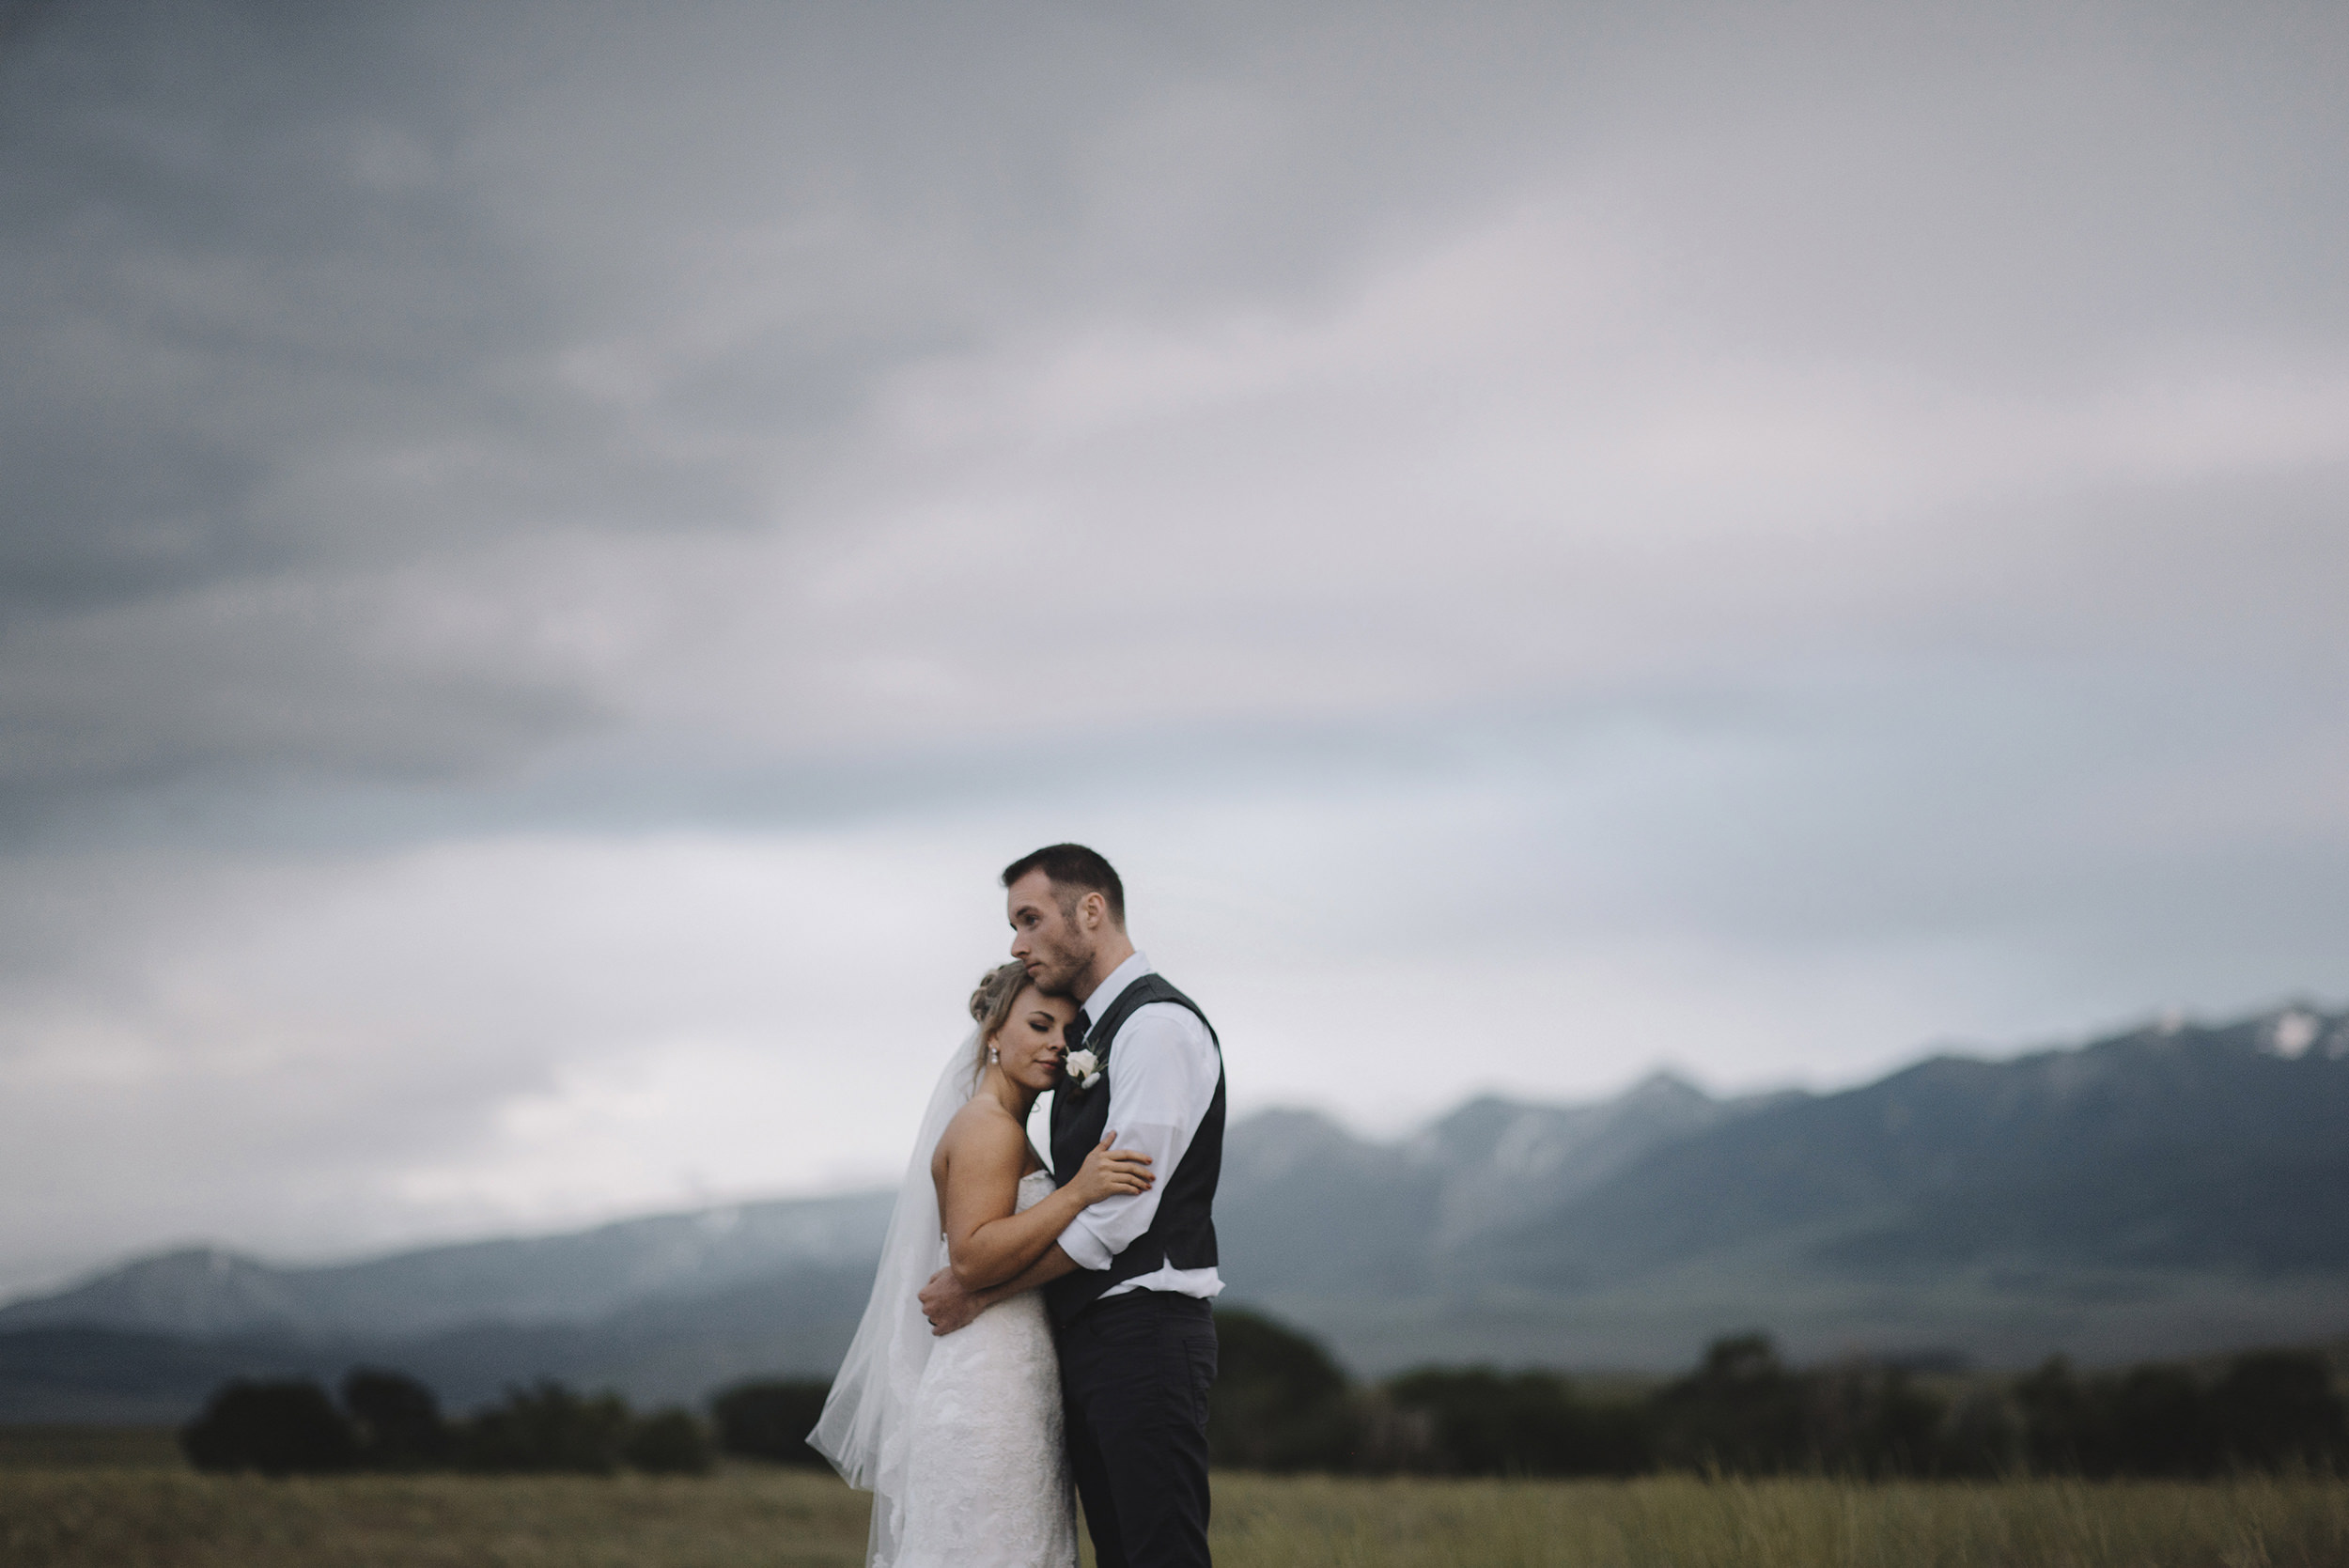 Colby-and-Jess-Intimate-Backyard-Wedding-Bozeman-Montana280.jpg